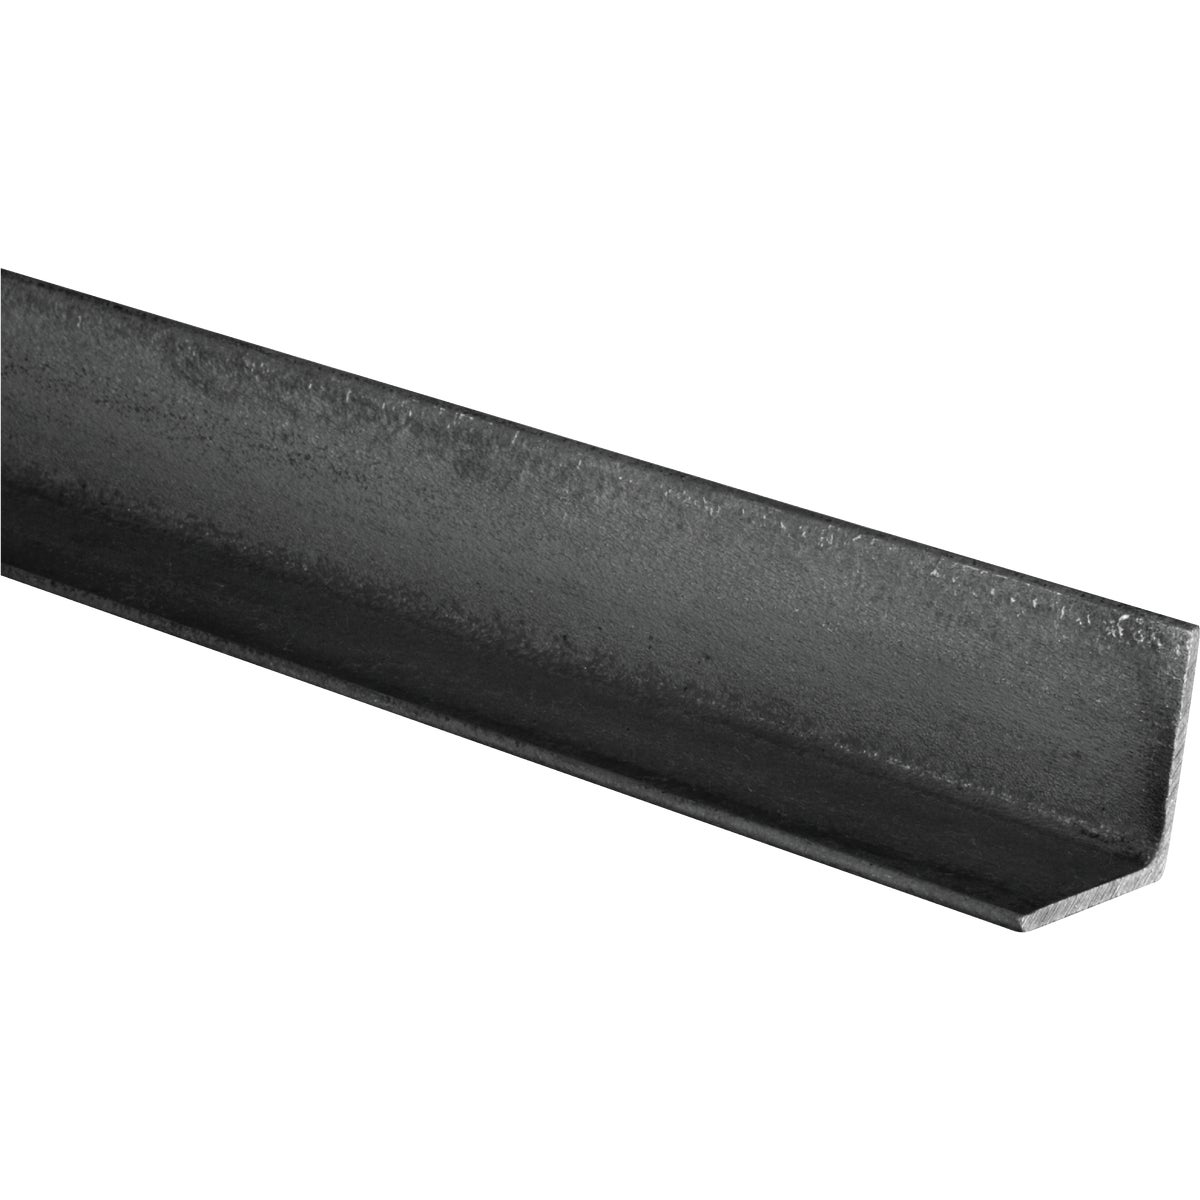 1/8X1X6' HR STEEL ANGLE - N215442 by National Mfg Co